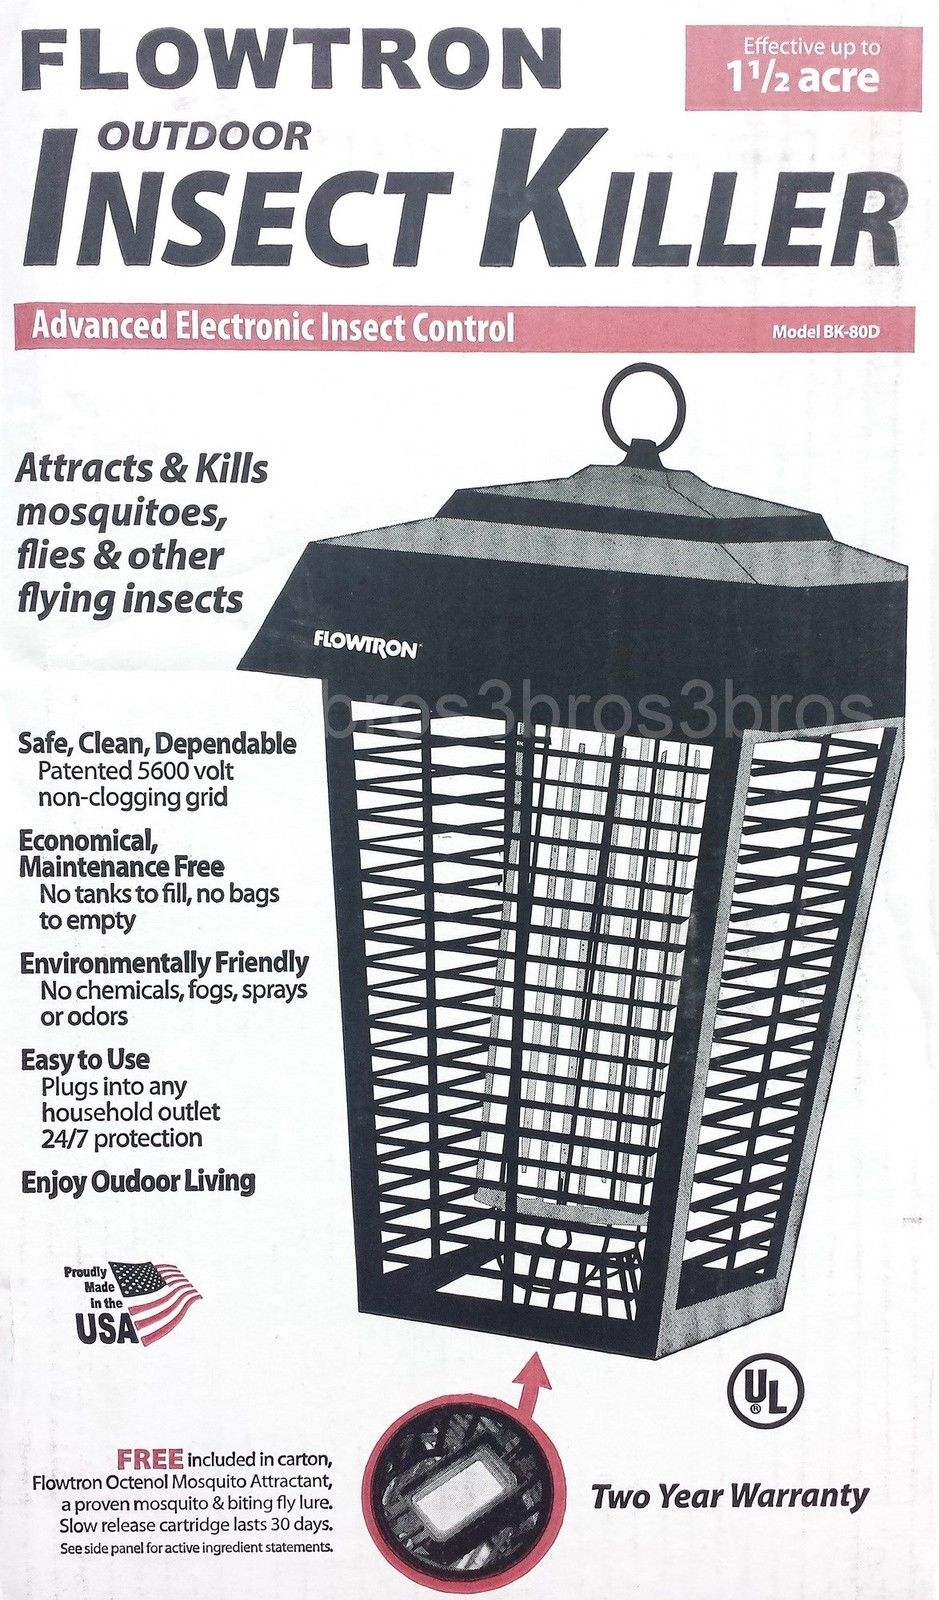 New Bug Zapper Mosquito Insect Killer Trap Flowtron 1-1/2 Acre Bug Light